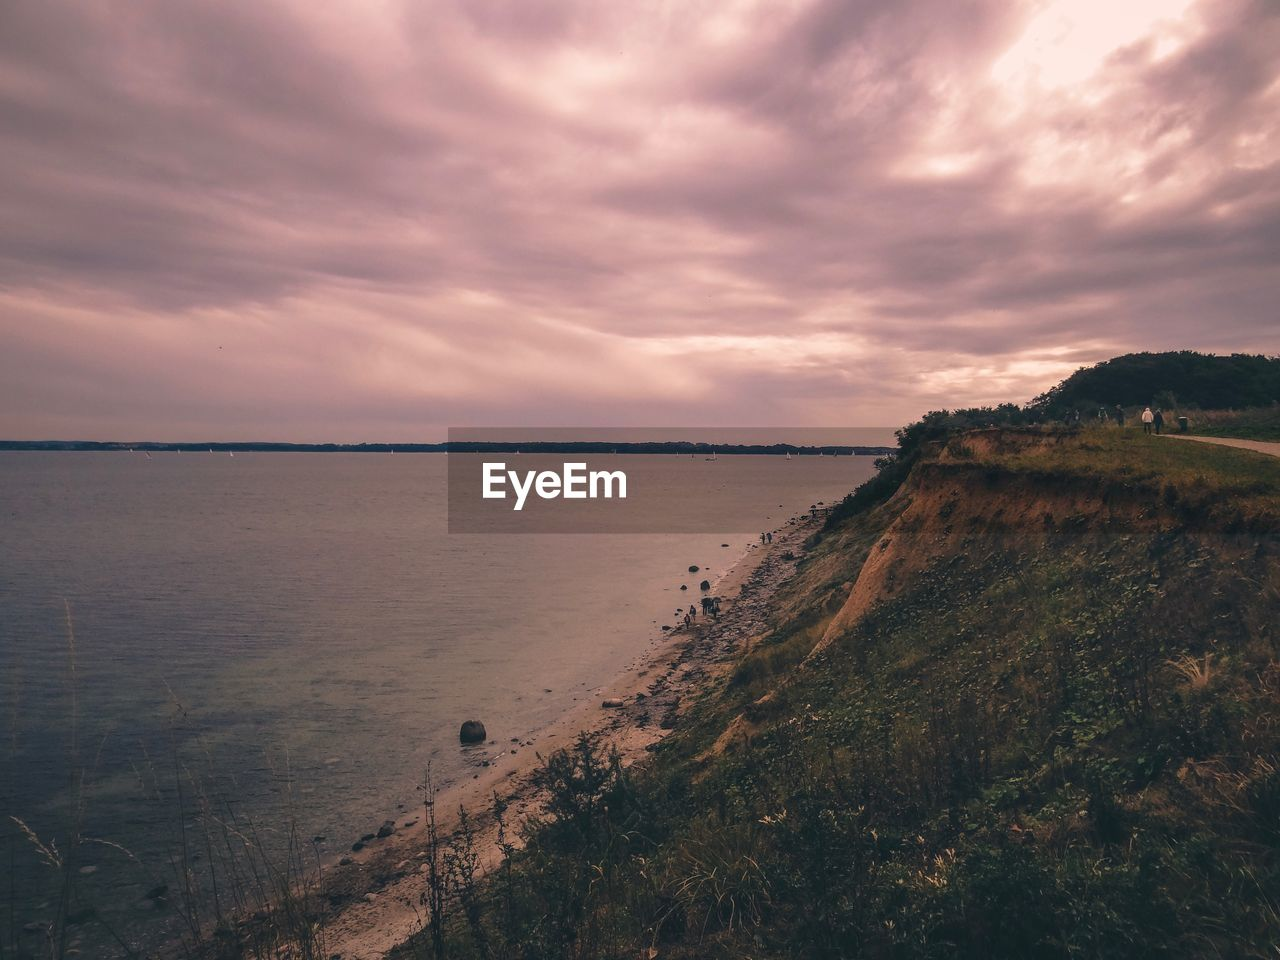 sky, cloud - sky, scenics - nature, water, tranquility, beauty in nature, sea, tranquil scene, nature, sunset, no people, land, beach, horizon, non-urban scene, outdoors, plant, environment